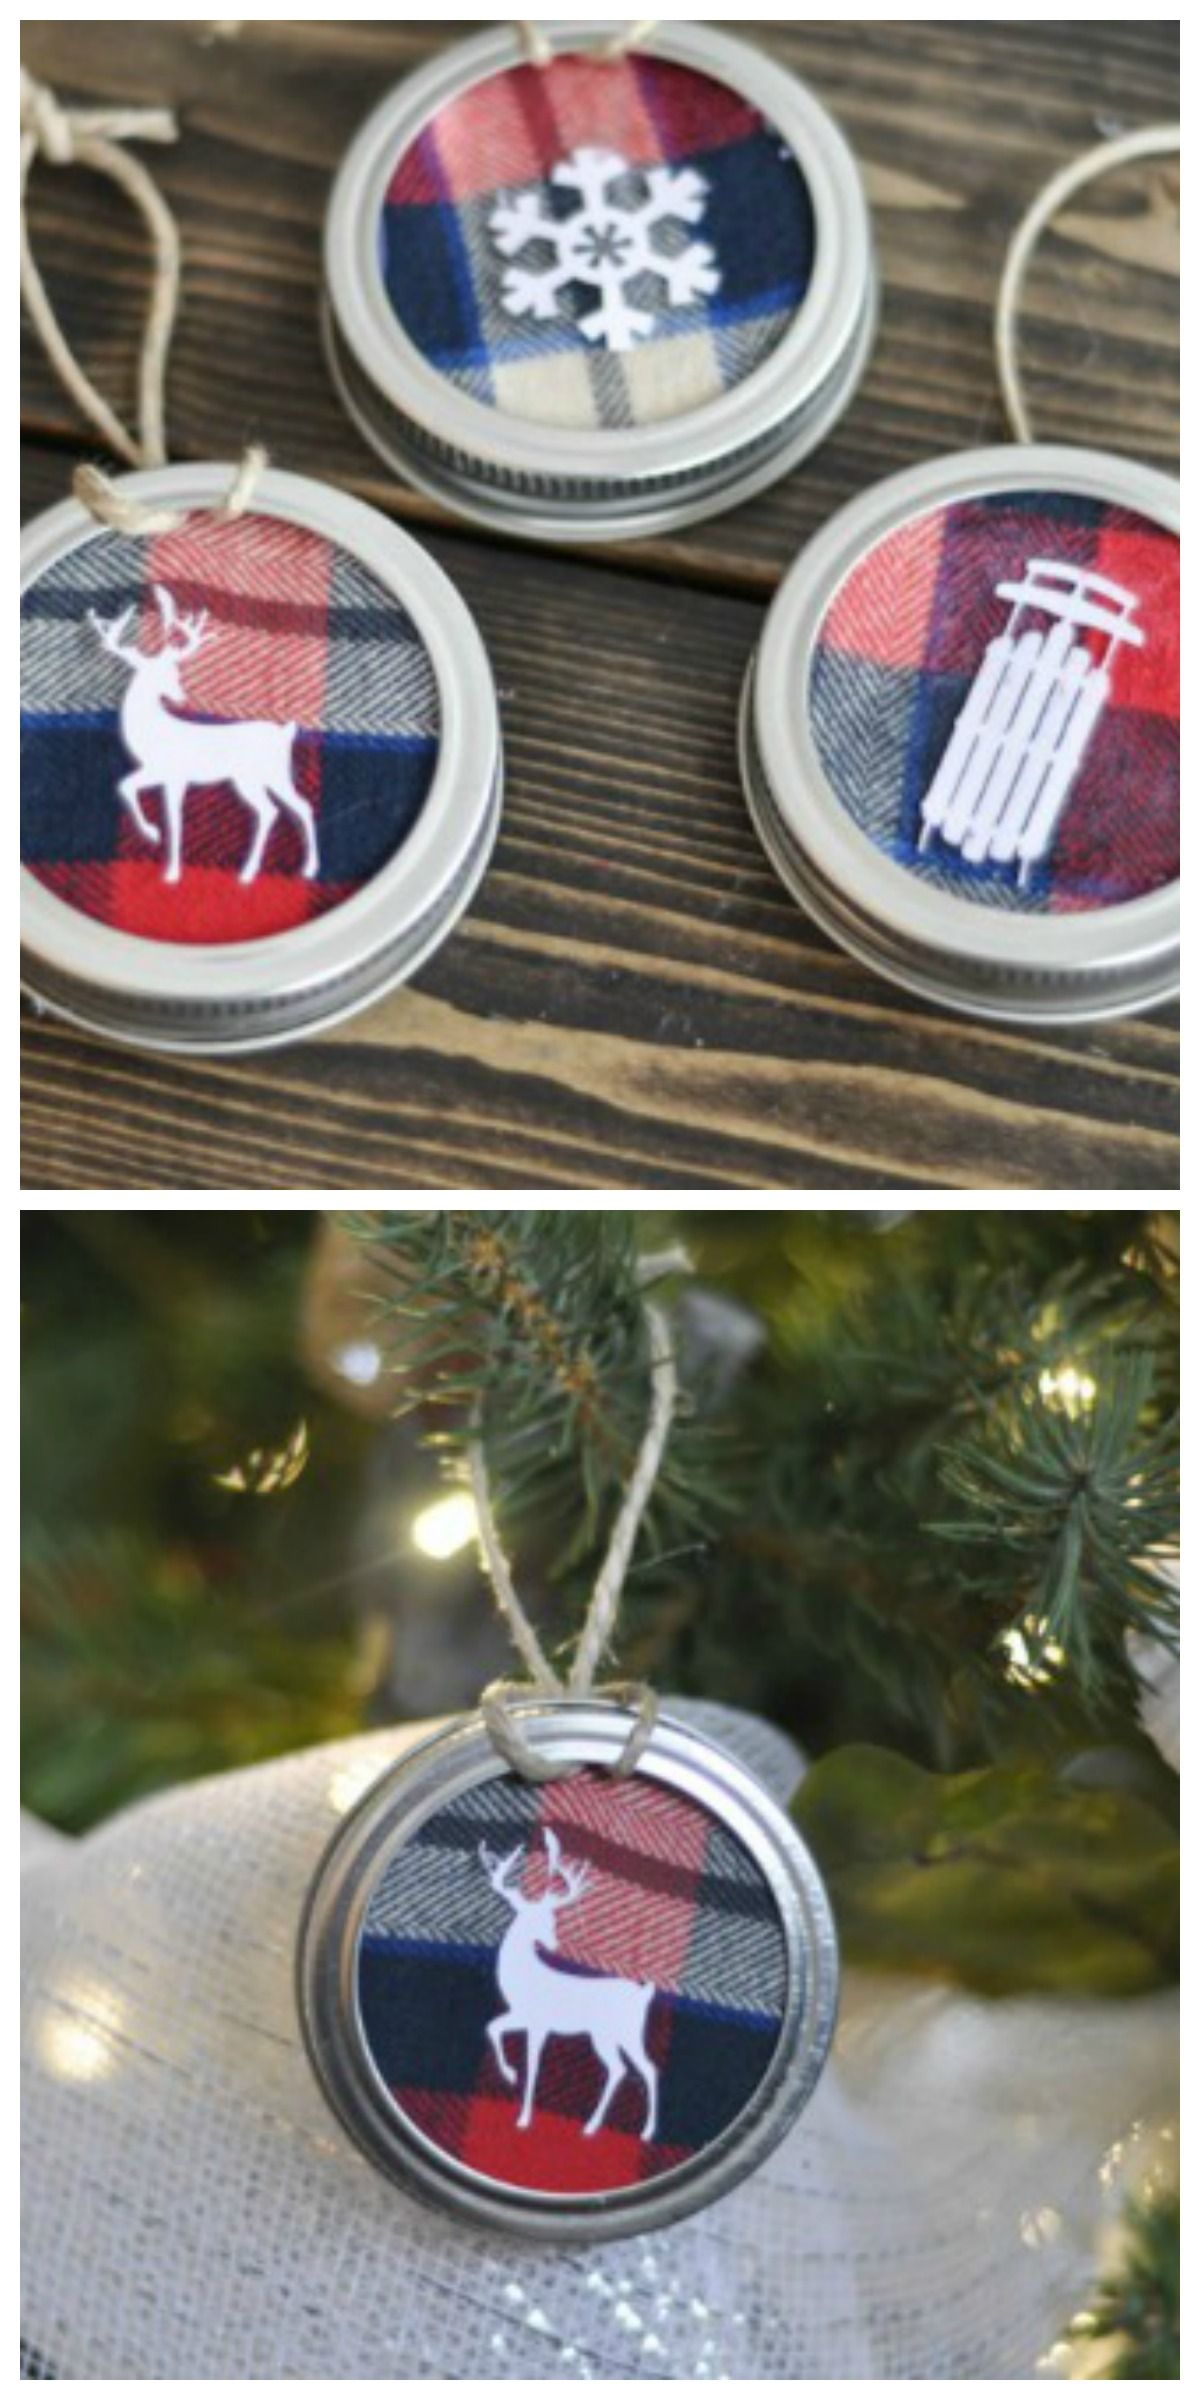 Plaid monograms natural wood ornaments feathers and i couldn t - 37 Magical Ways To Use Mason Jars This Christmas